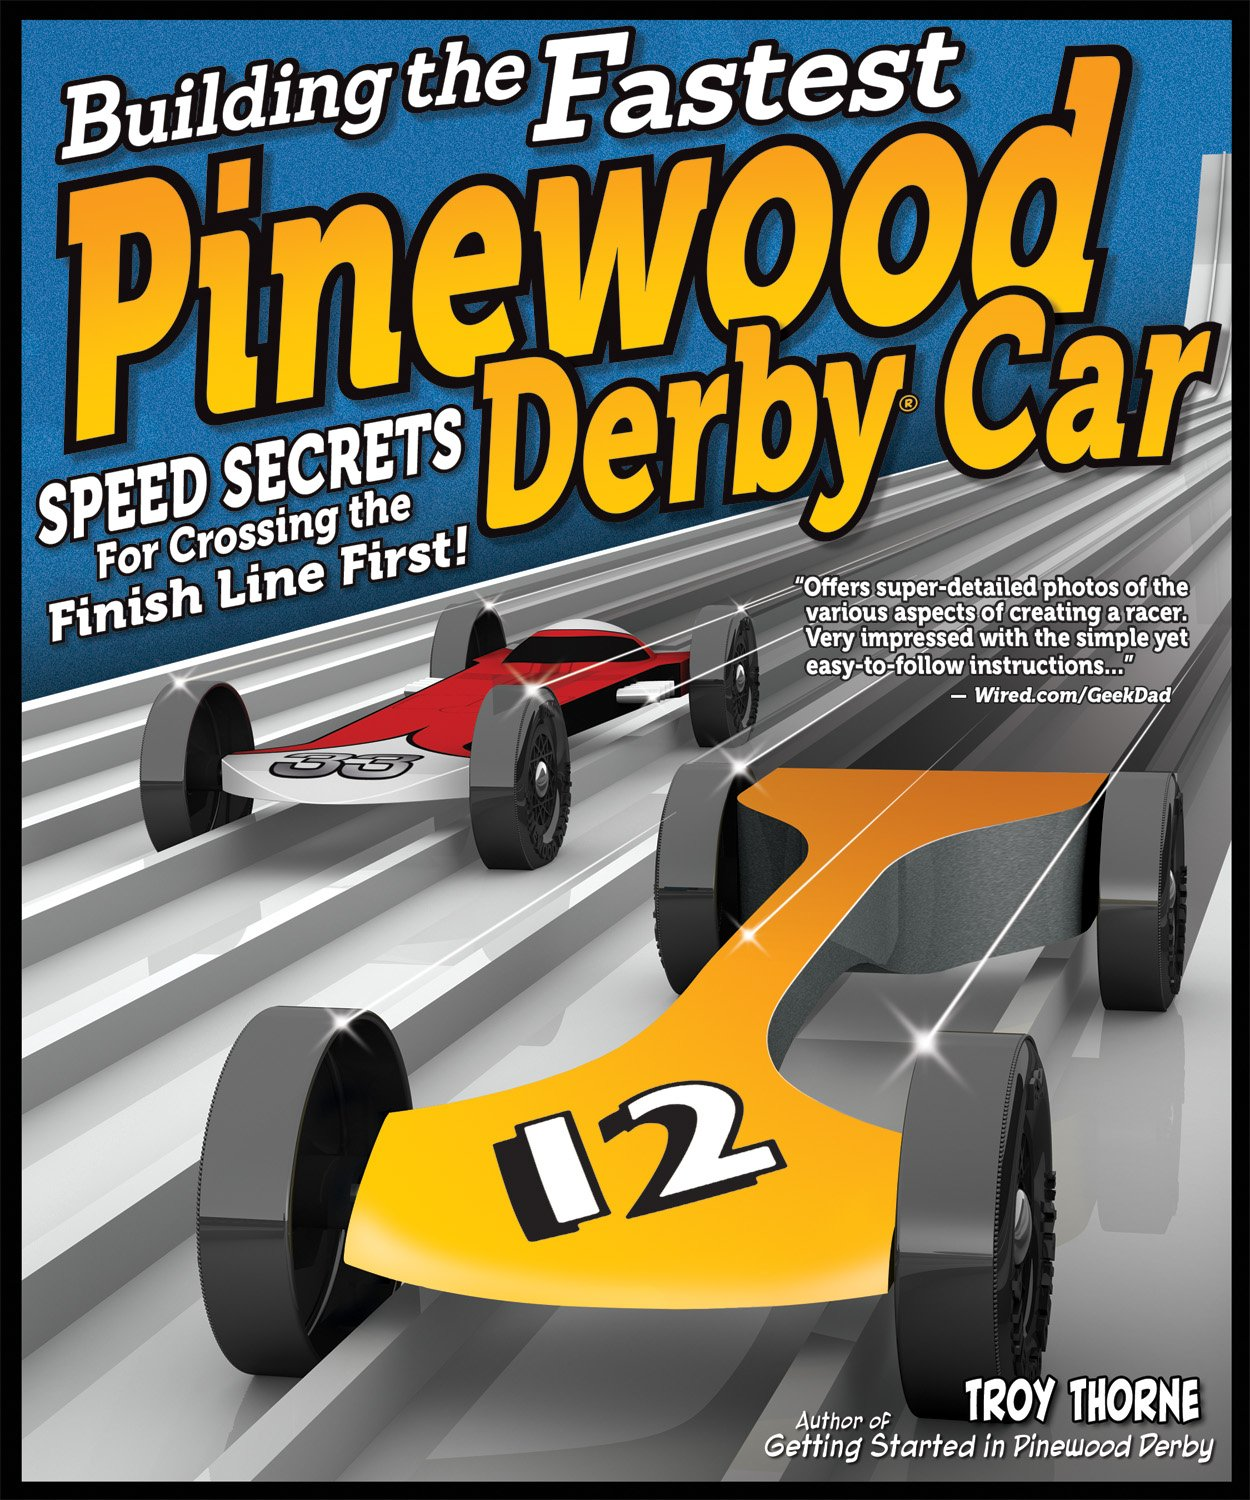 Building The Fastest Pinewood Derby Car Speed Secrets For Crossing Finish Line First Fox Chapel Publishing Illustrated Guide To Making A Competitive